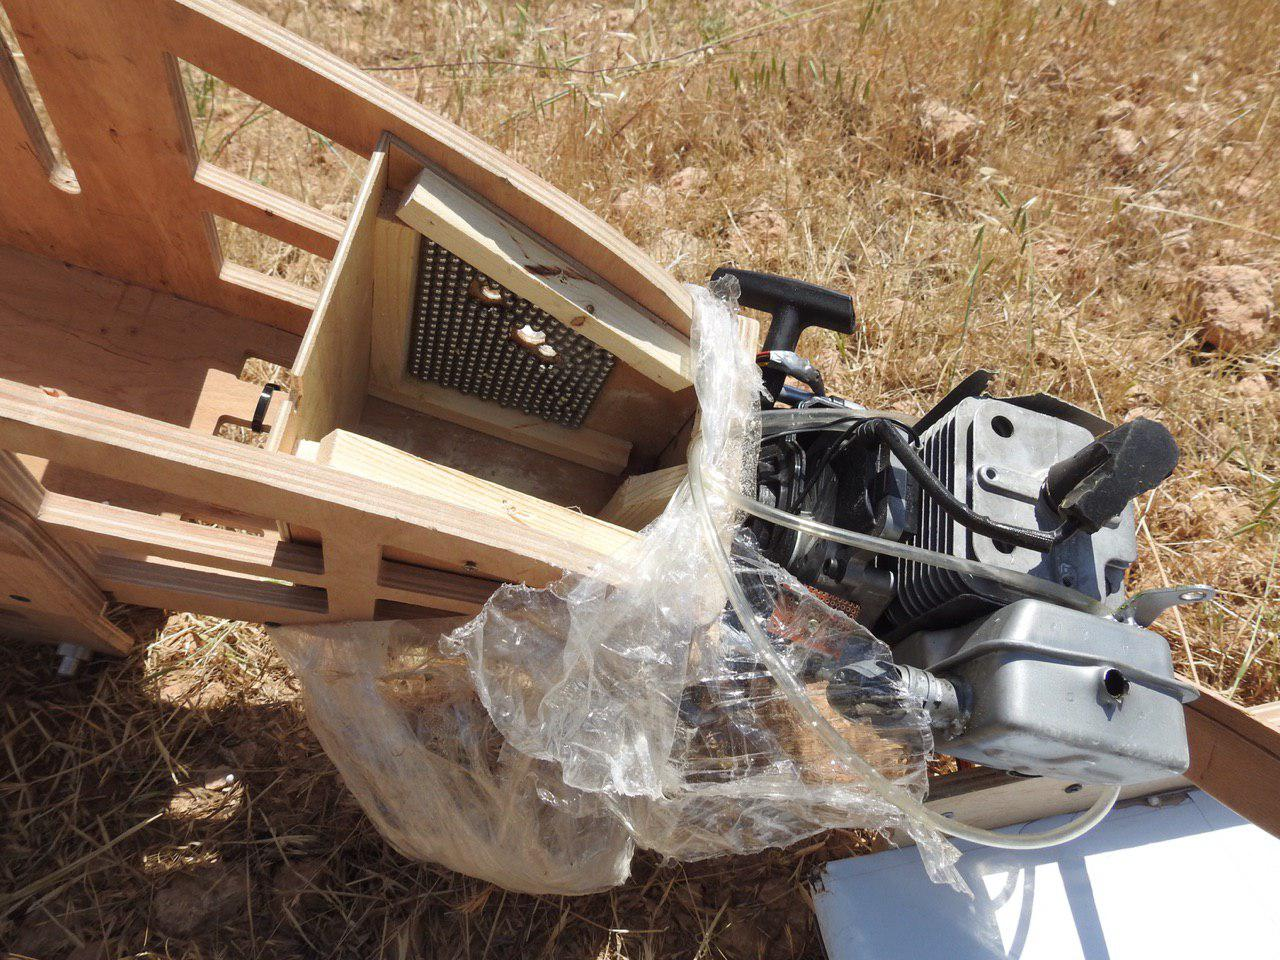 New Photos Provide Closer Look At Militants' DIY-Style Attack Drones